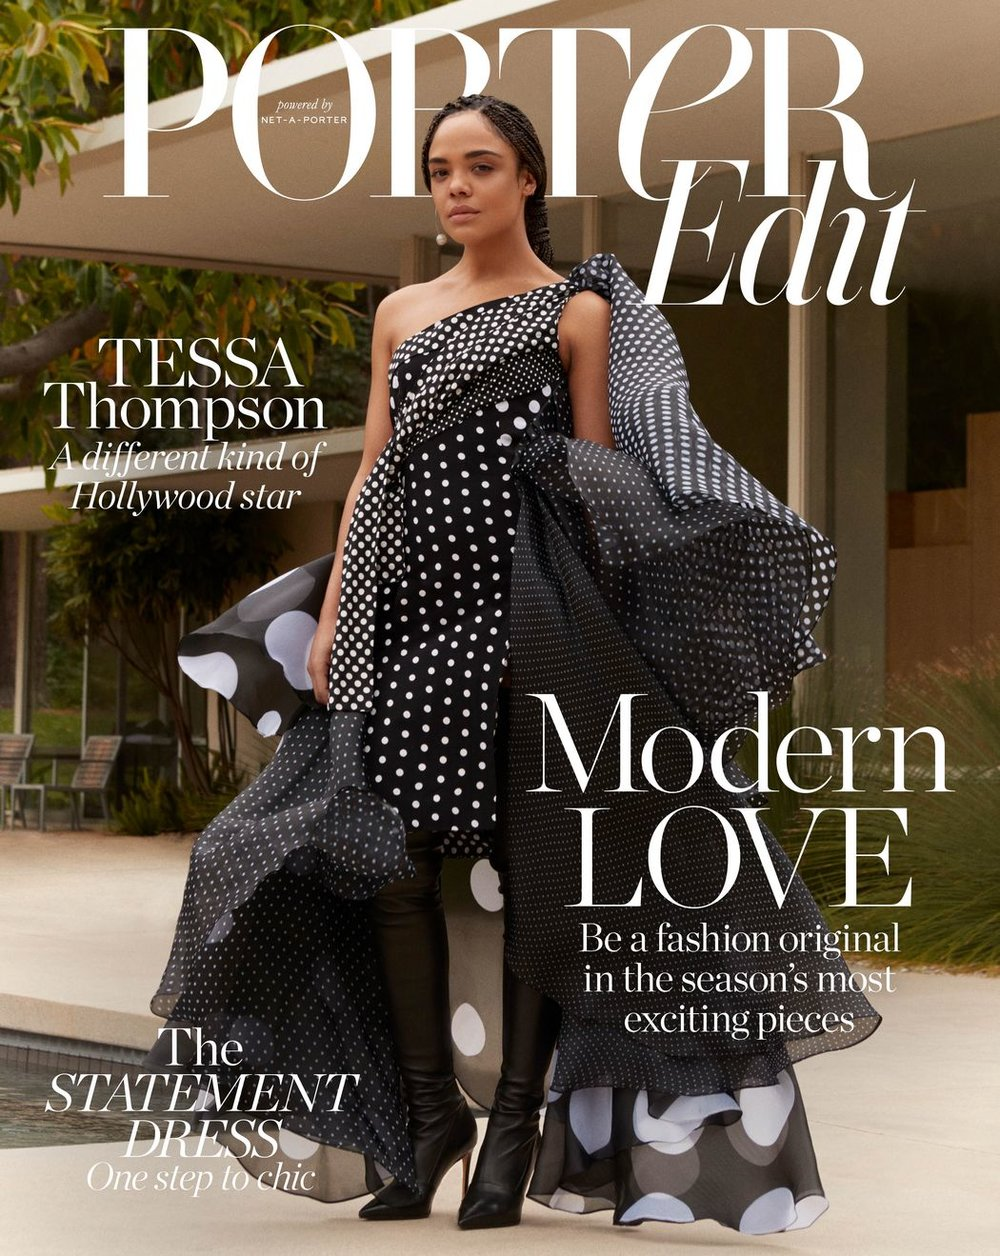 Tessa Thompson for PORTER Edit